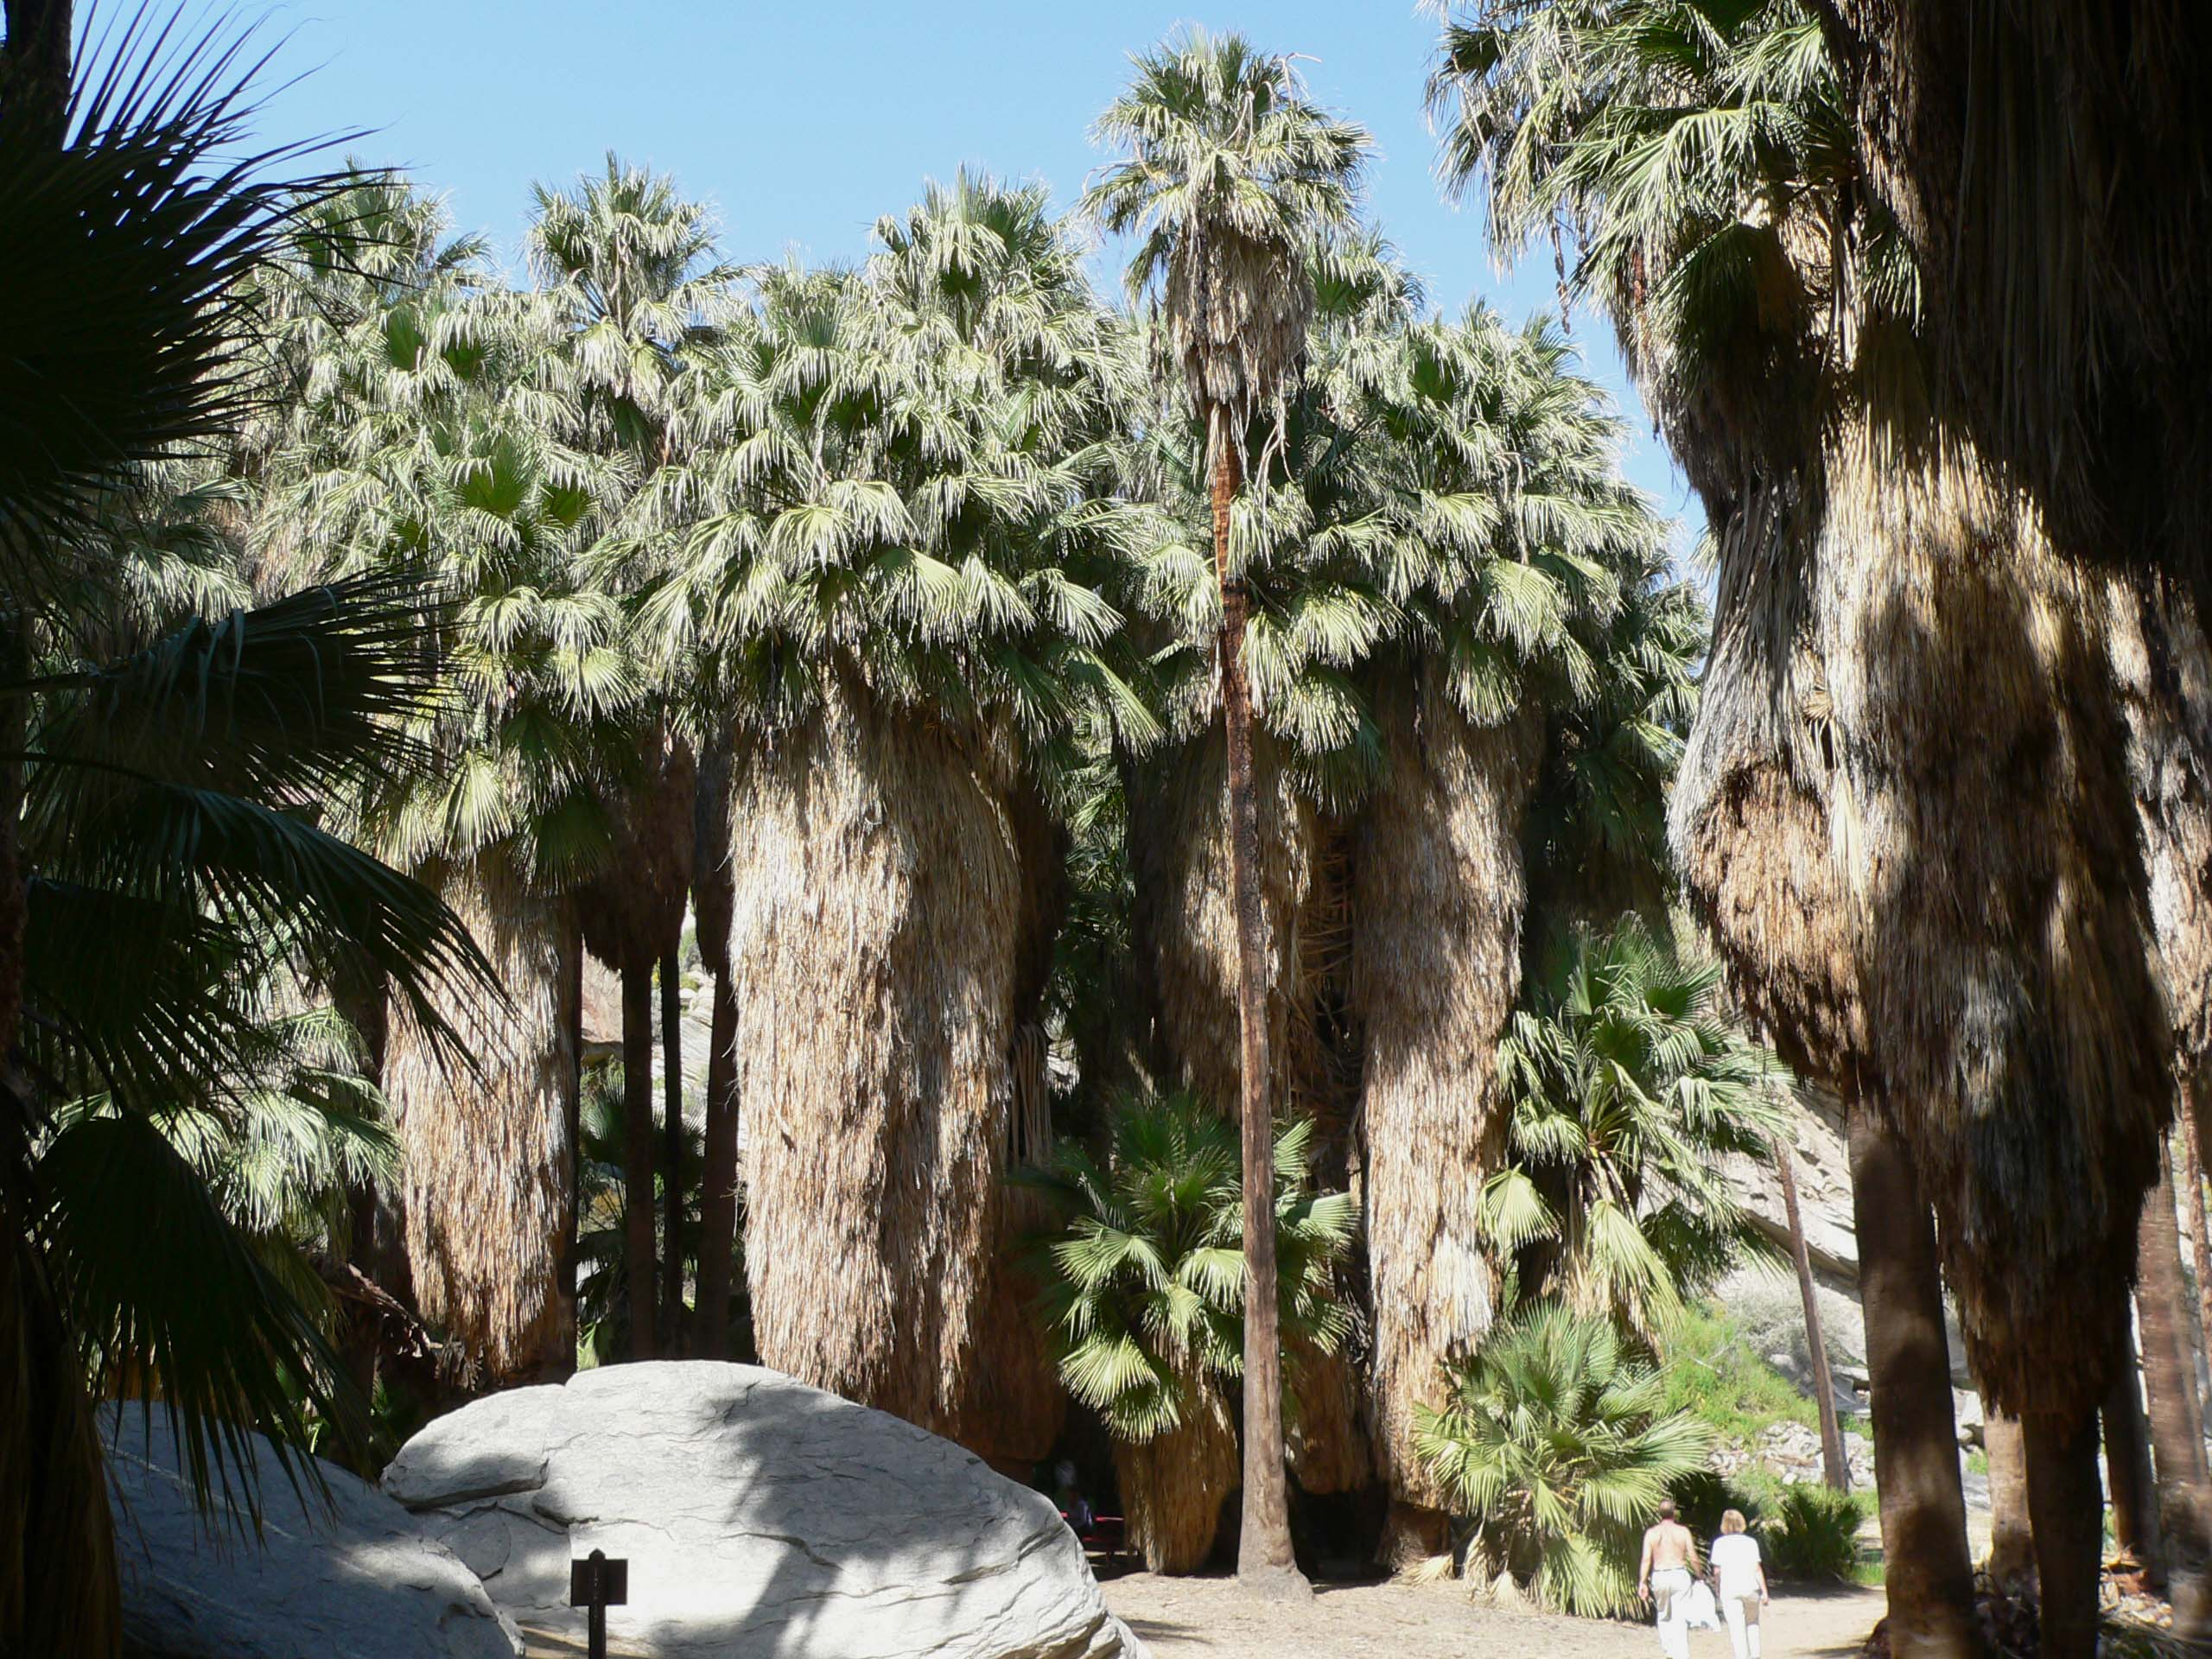 https://upload.wikimedia.org/wikipedia/commons/0/04/Washingtonia_filifera_grove.jpg